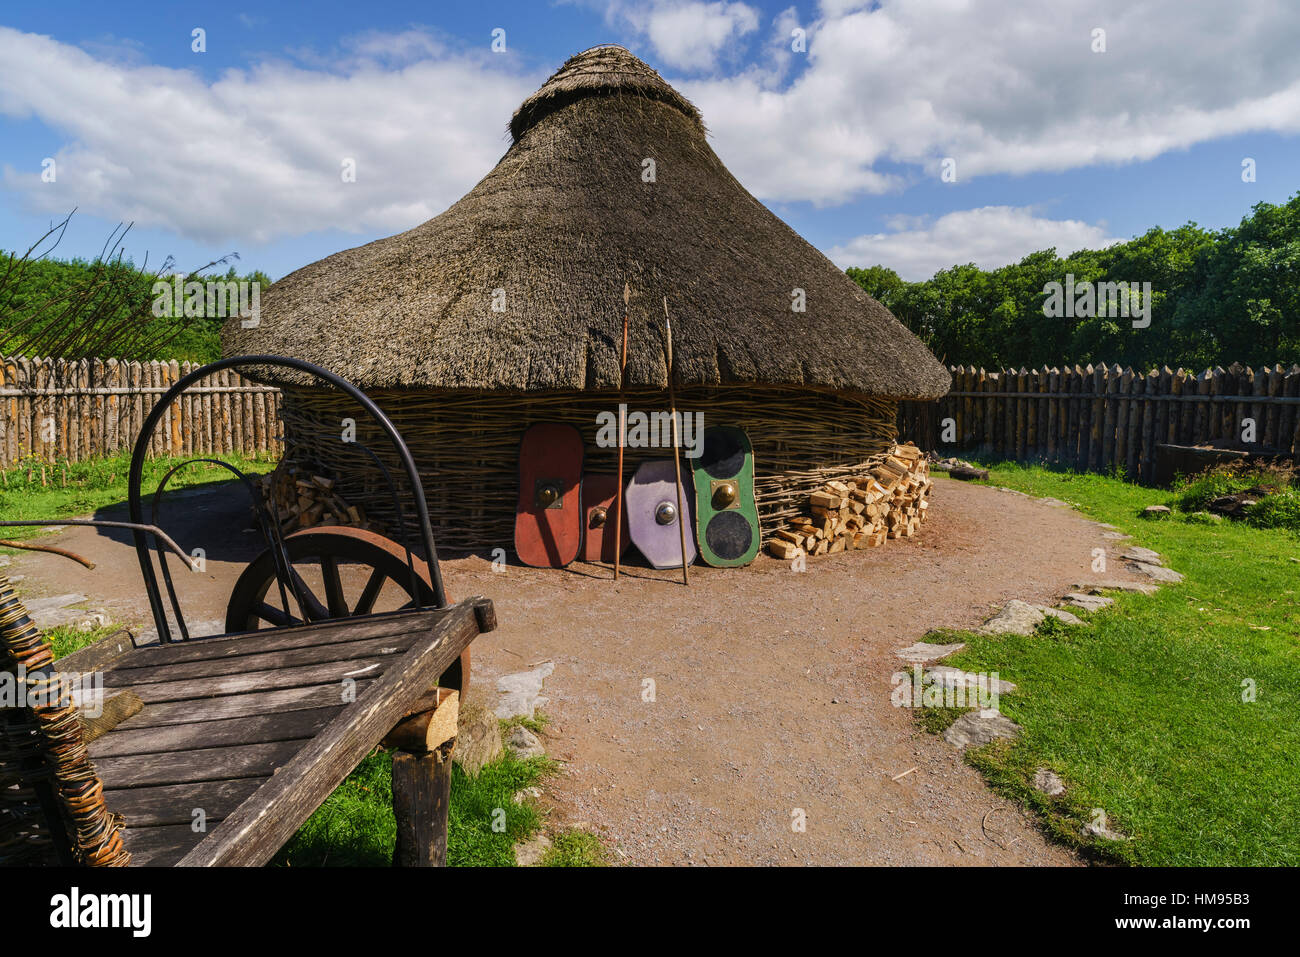 Navan Center, County Armagh, Ulster, Northern Ireland, United Kingdom - Stock Image